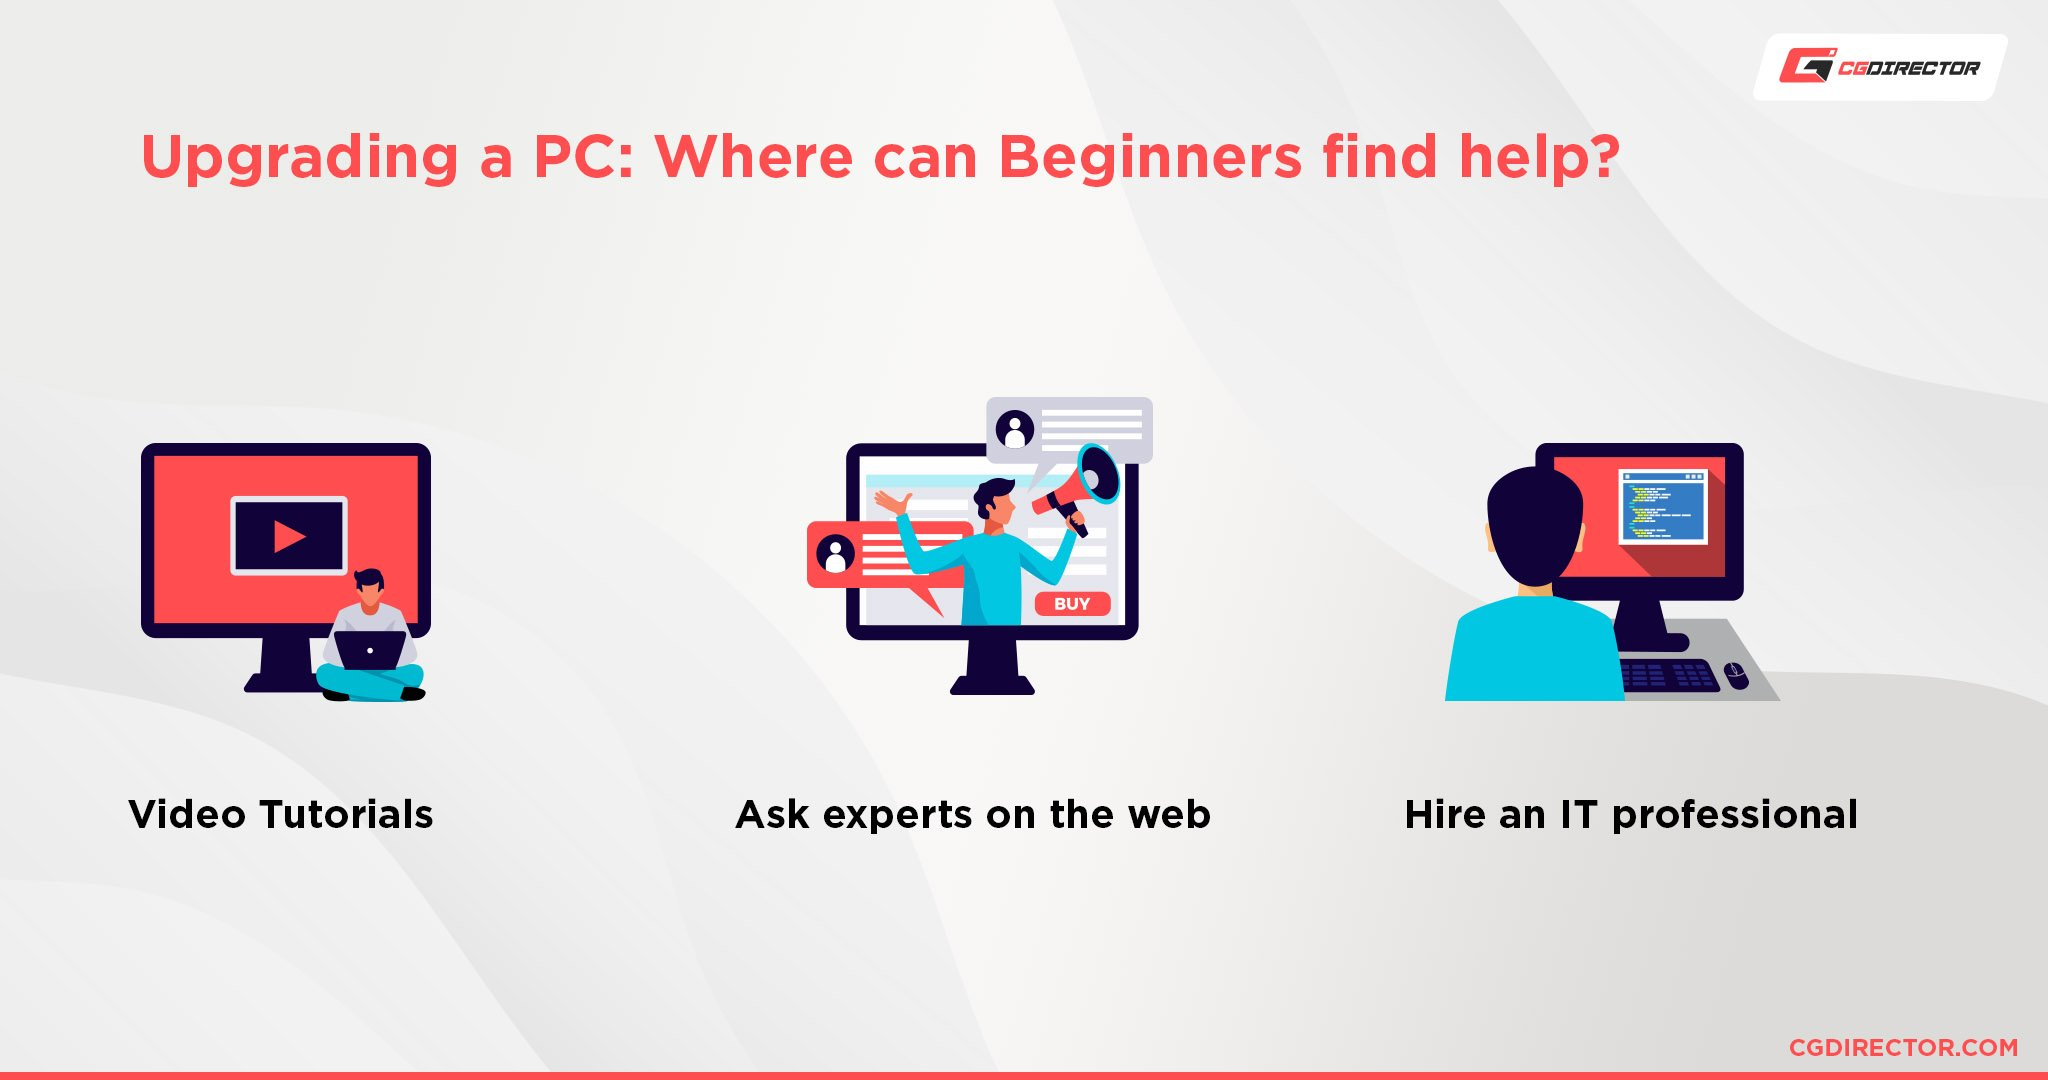 Upgrading a PC Where can Beginners find help